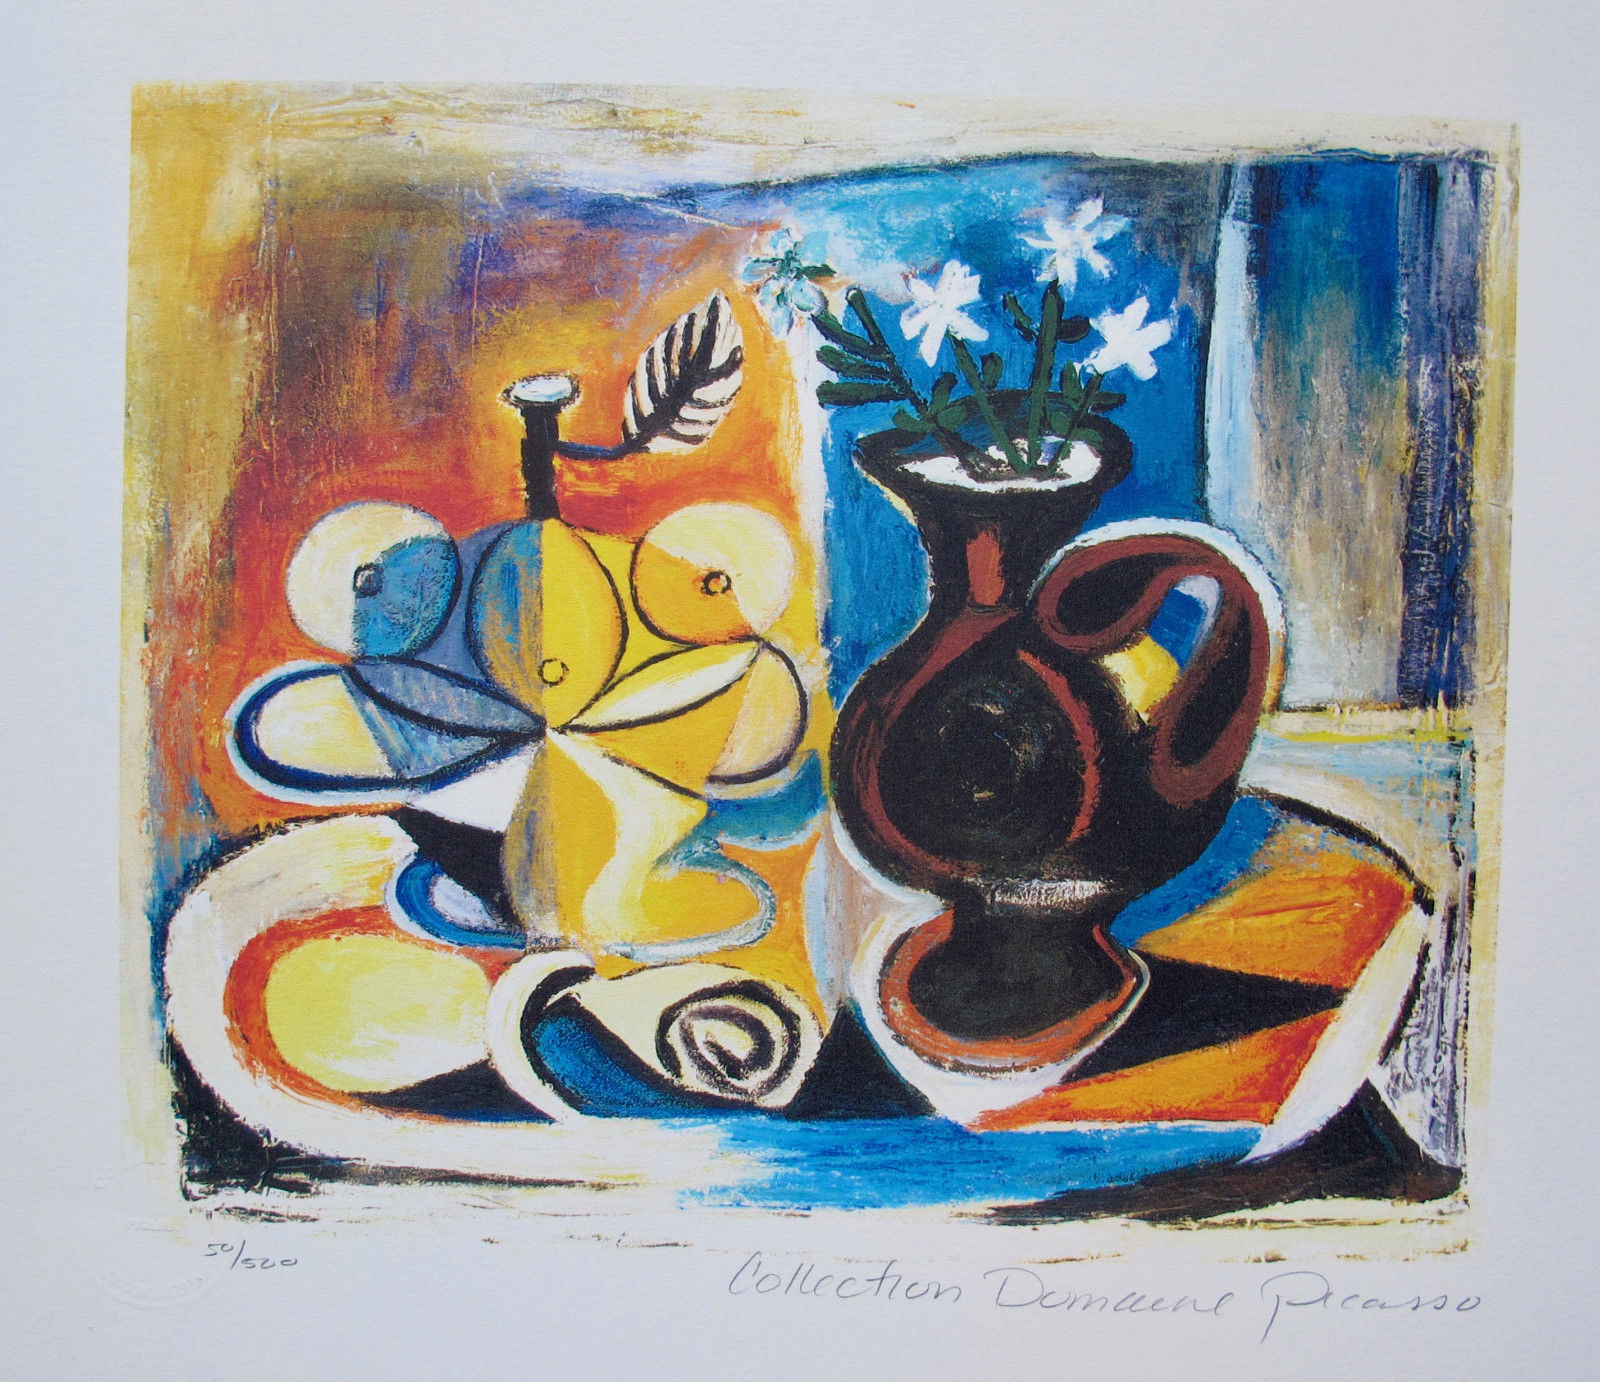 Pablo Picasso FRUIT WITH VASE OF FLOWERS Estate Signed Limited Edition Giclee